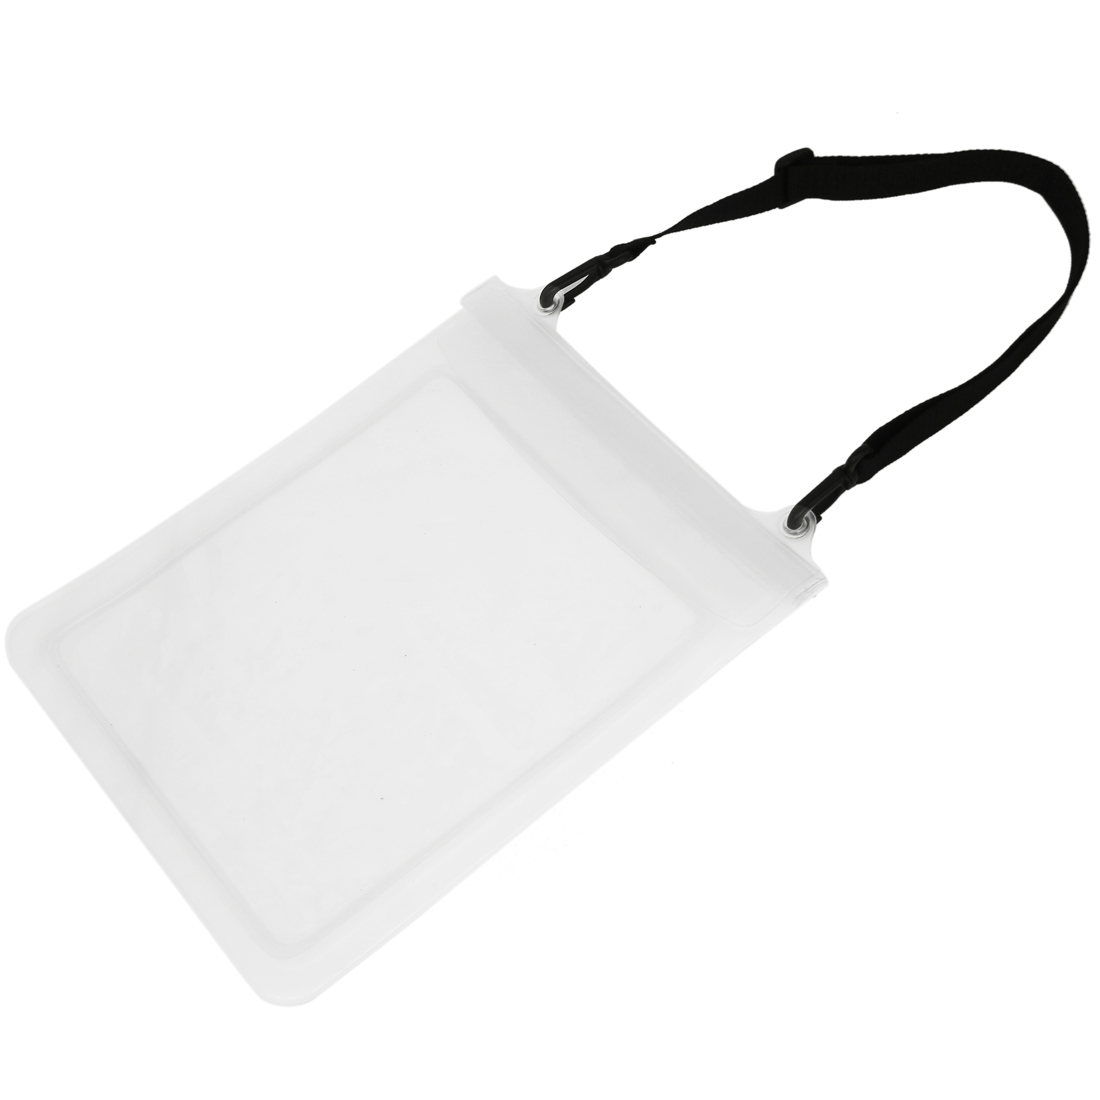 "Waterproof PVC Skin Cover Sleeve Pouch Bag Clear for 9.7"" 10.1"" Tablet PAD"